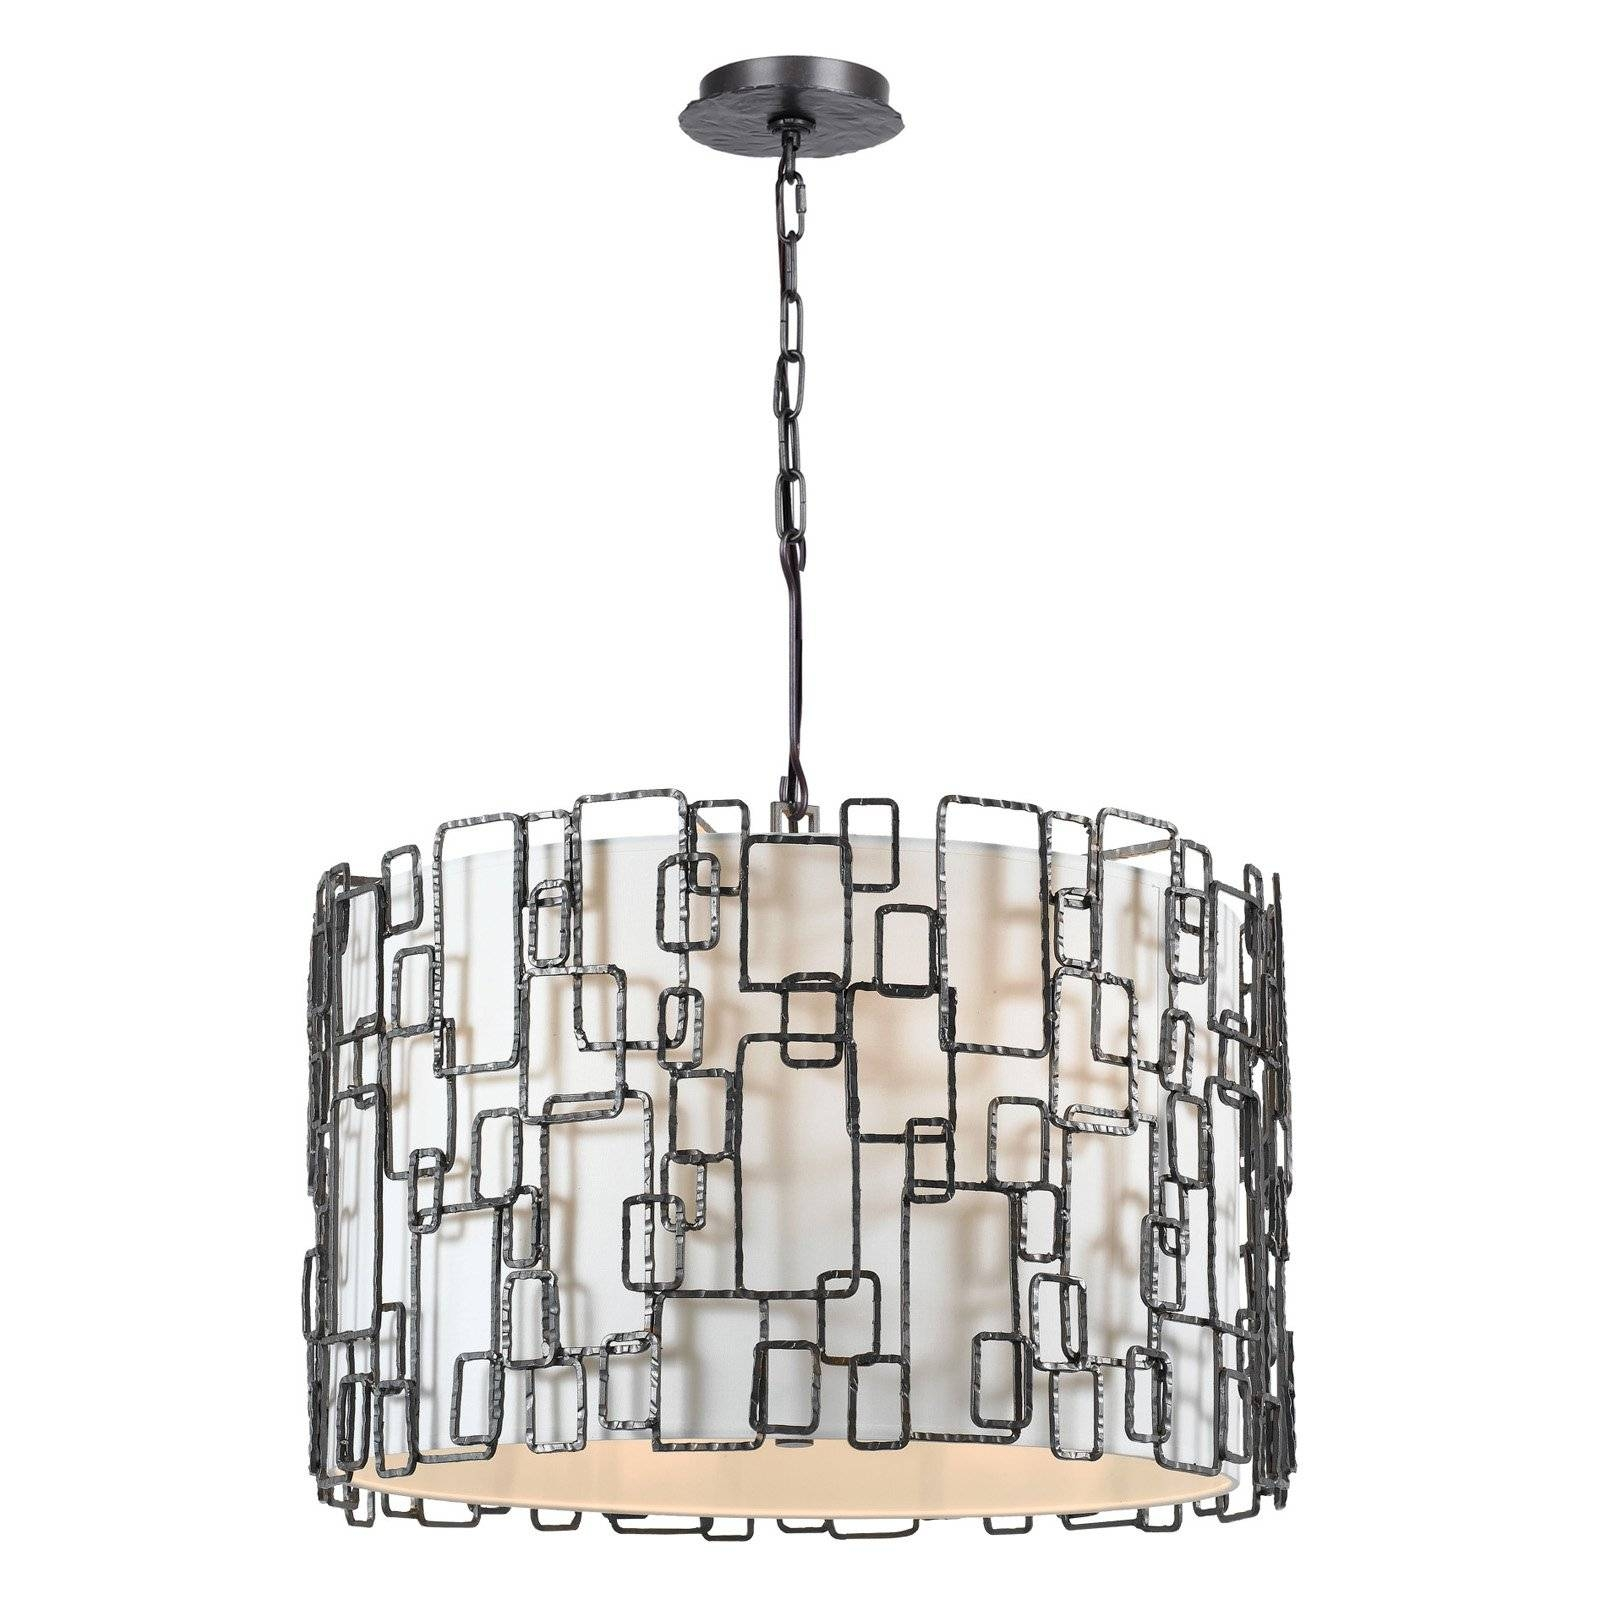 Bromi Design Bcp1113-8 Crystalline Modern 8 Light Crystal regarding Union Lighting Pendants (Image 3 of 15)